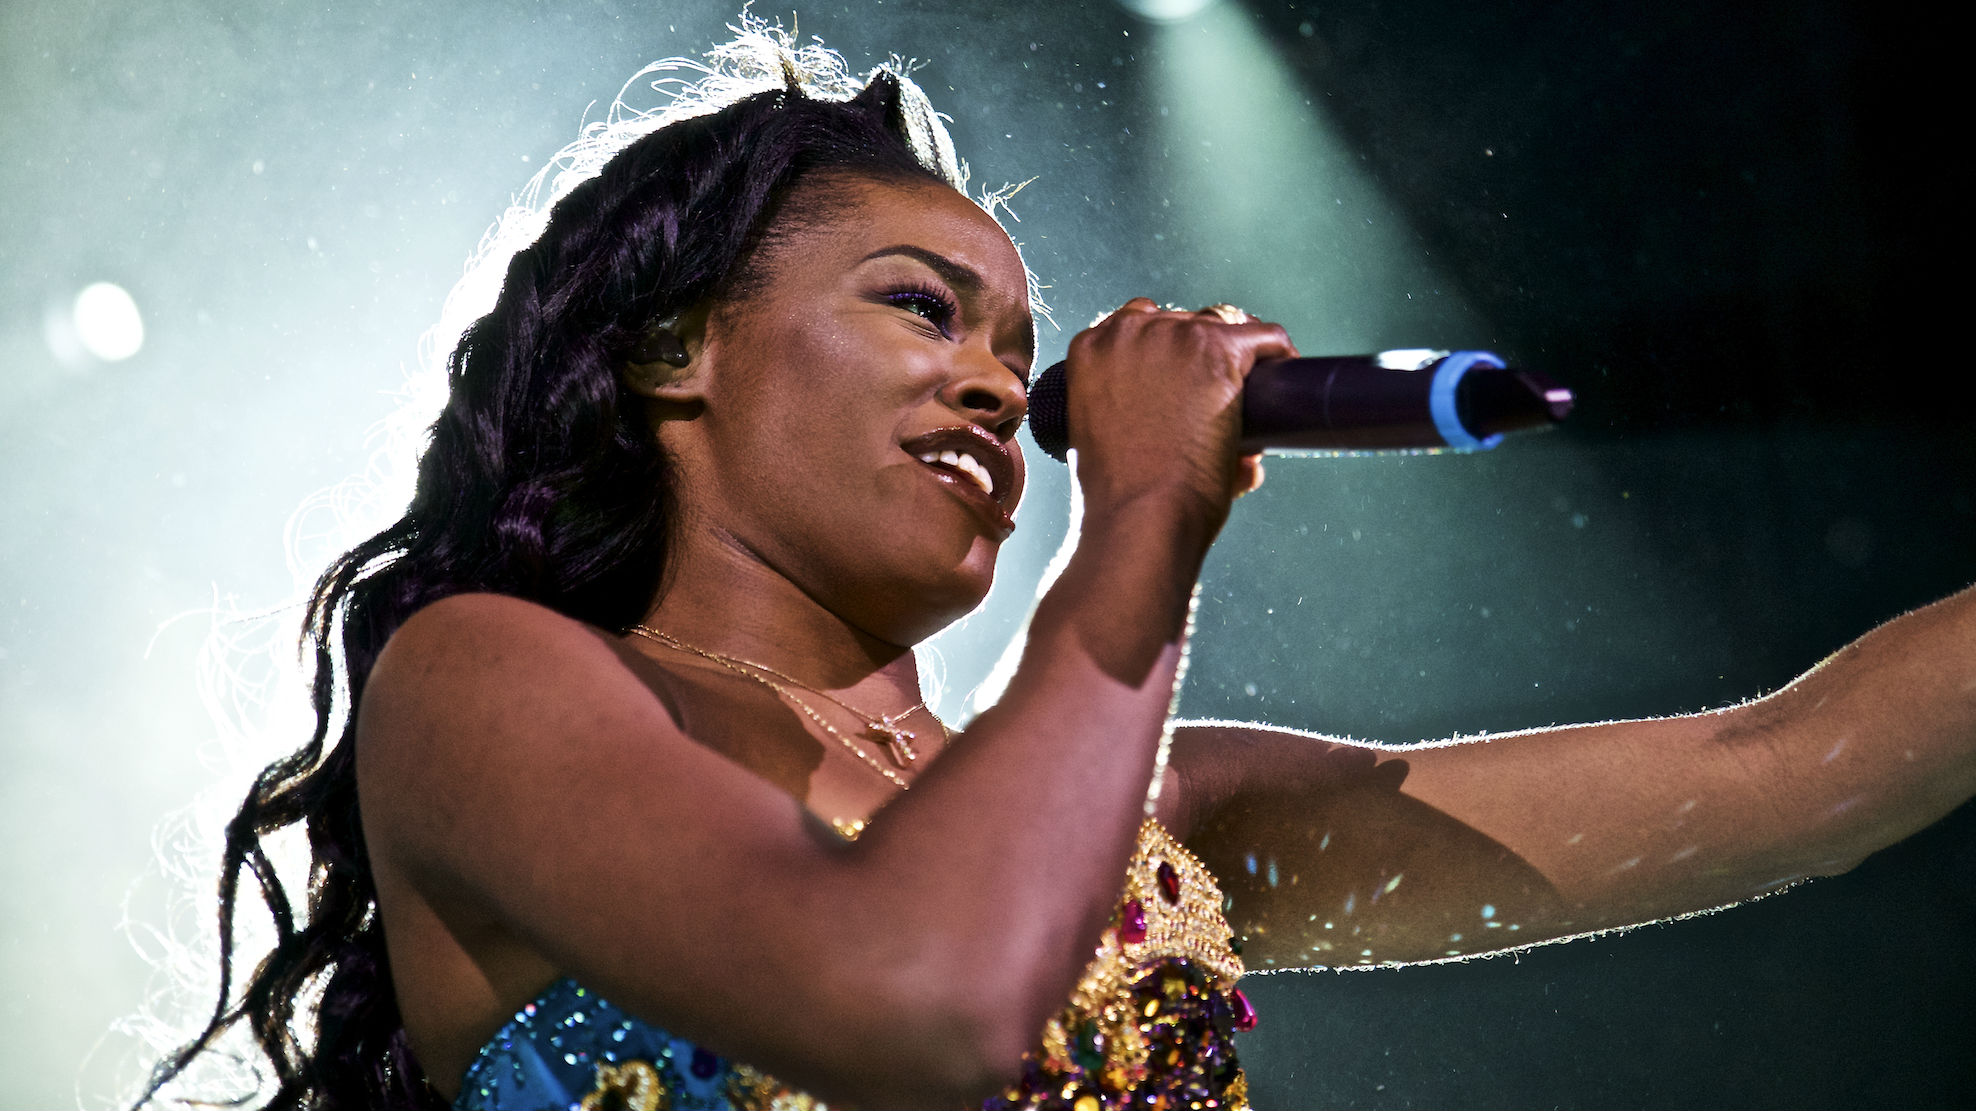 FILE - In this May 11, 2015 file photo, Azealia Banks performs in concert at Irving Plaza in New York. Banks, like Donald Trump, is outspoken and often criticized for her opinions. That makes the rapper the perfect person to perform at a Trump concert.